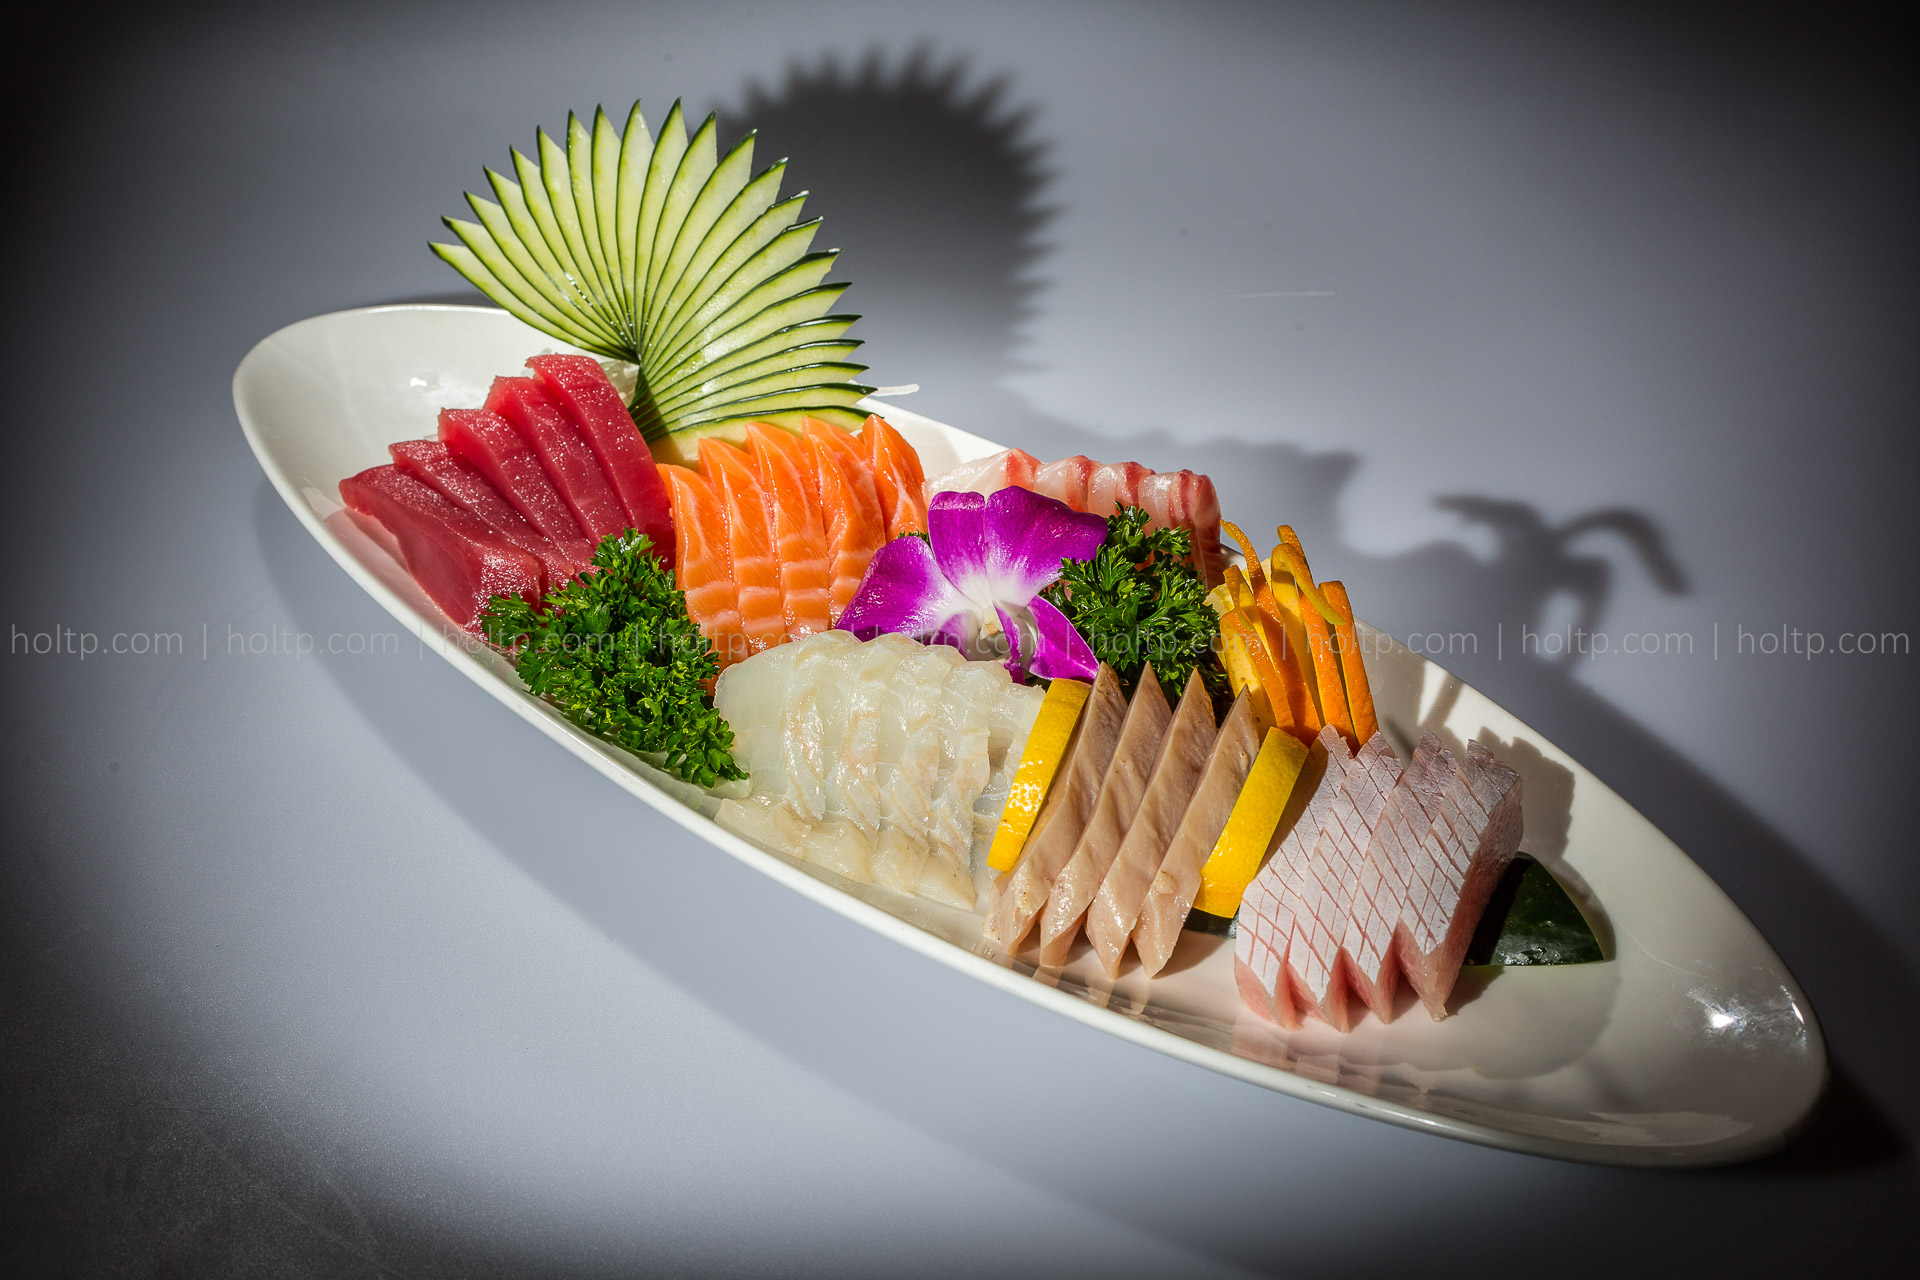 Sashimi | Sushi Restaurant Photography